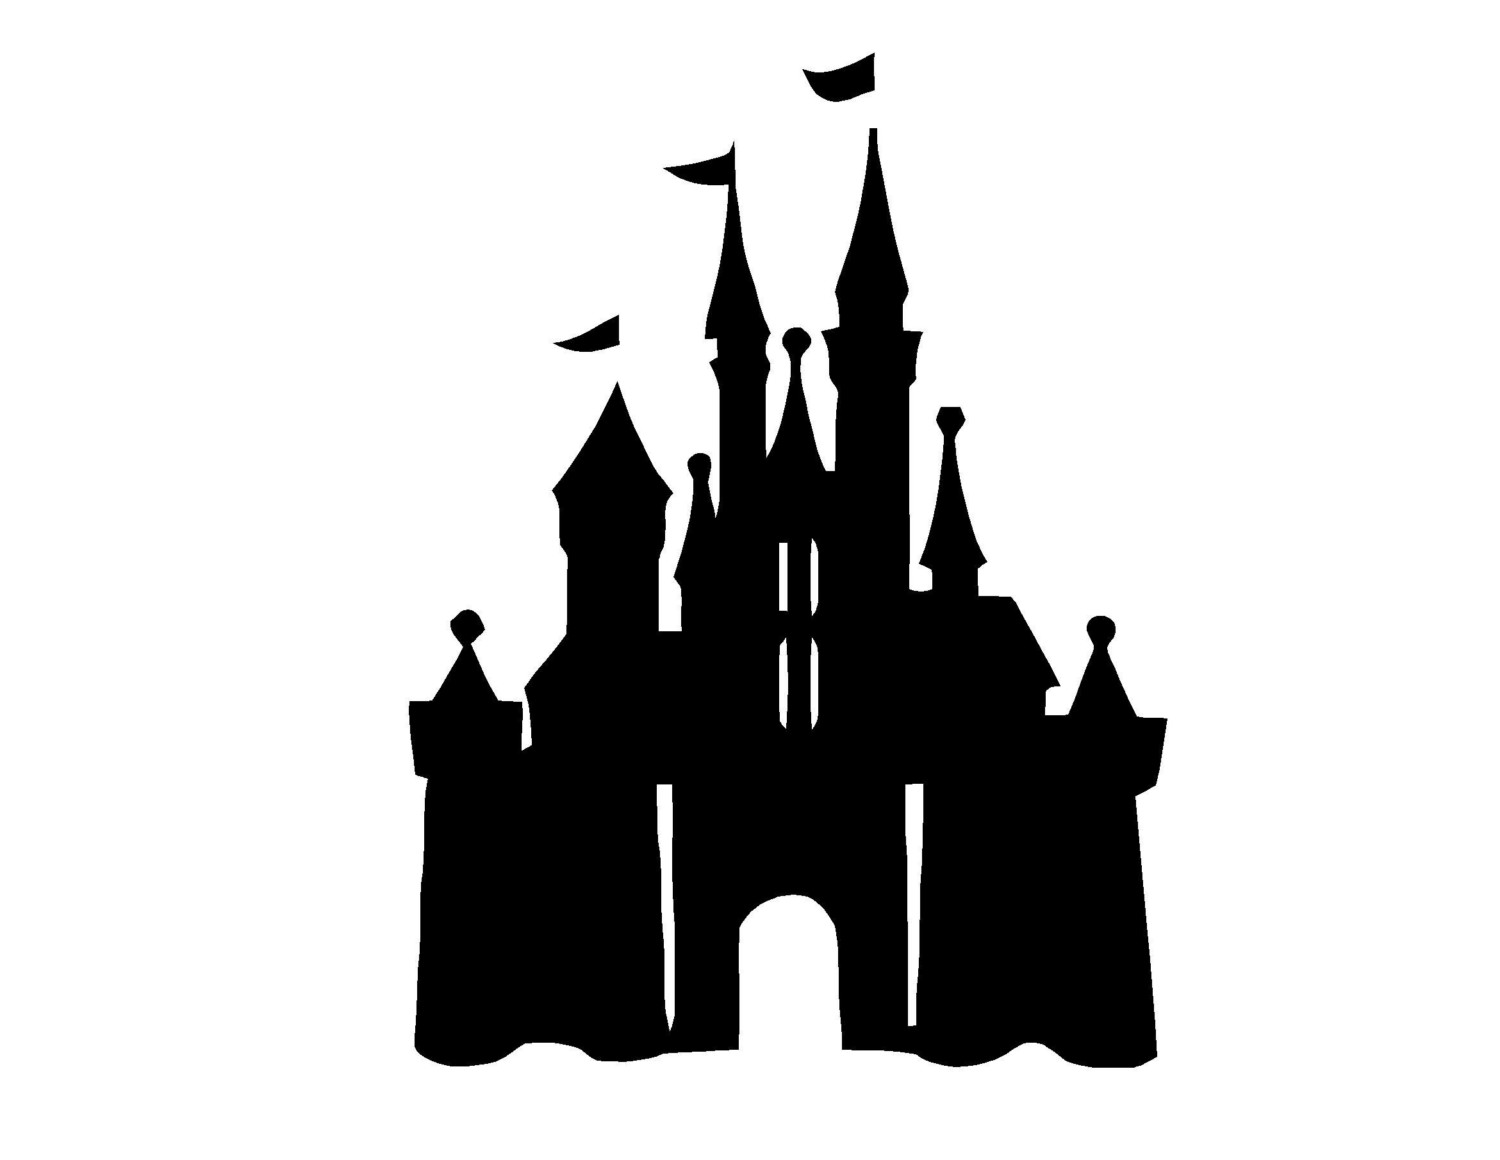 Draw Castles Image Search Results